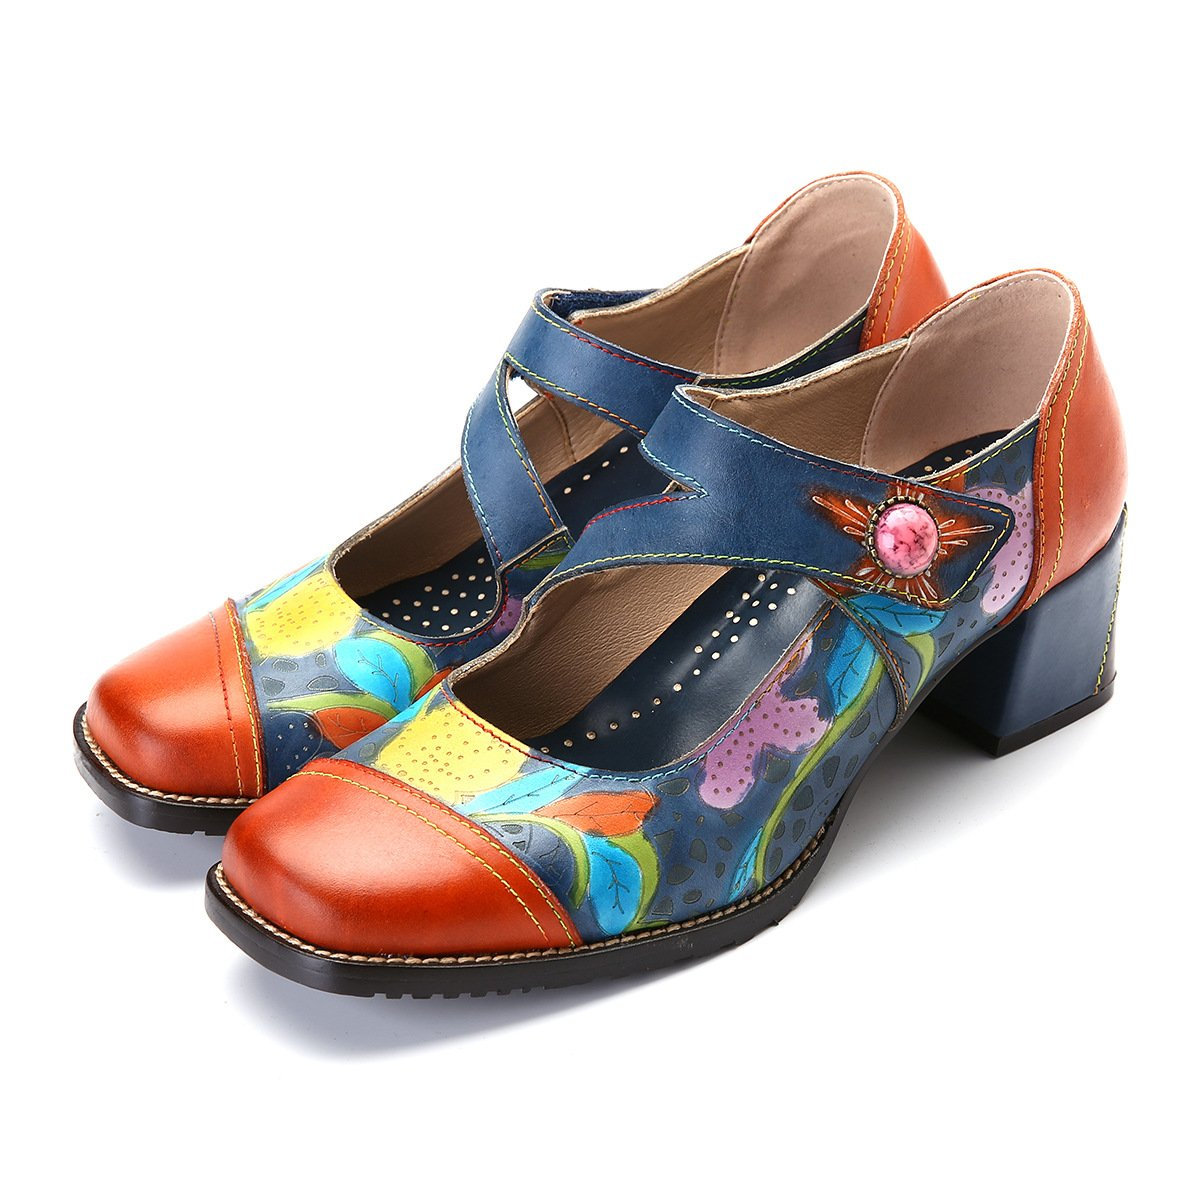 Women's Retro Handmade Ankel Boots Flowery Leather Upper Mary Jane Shoes